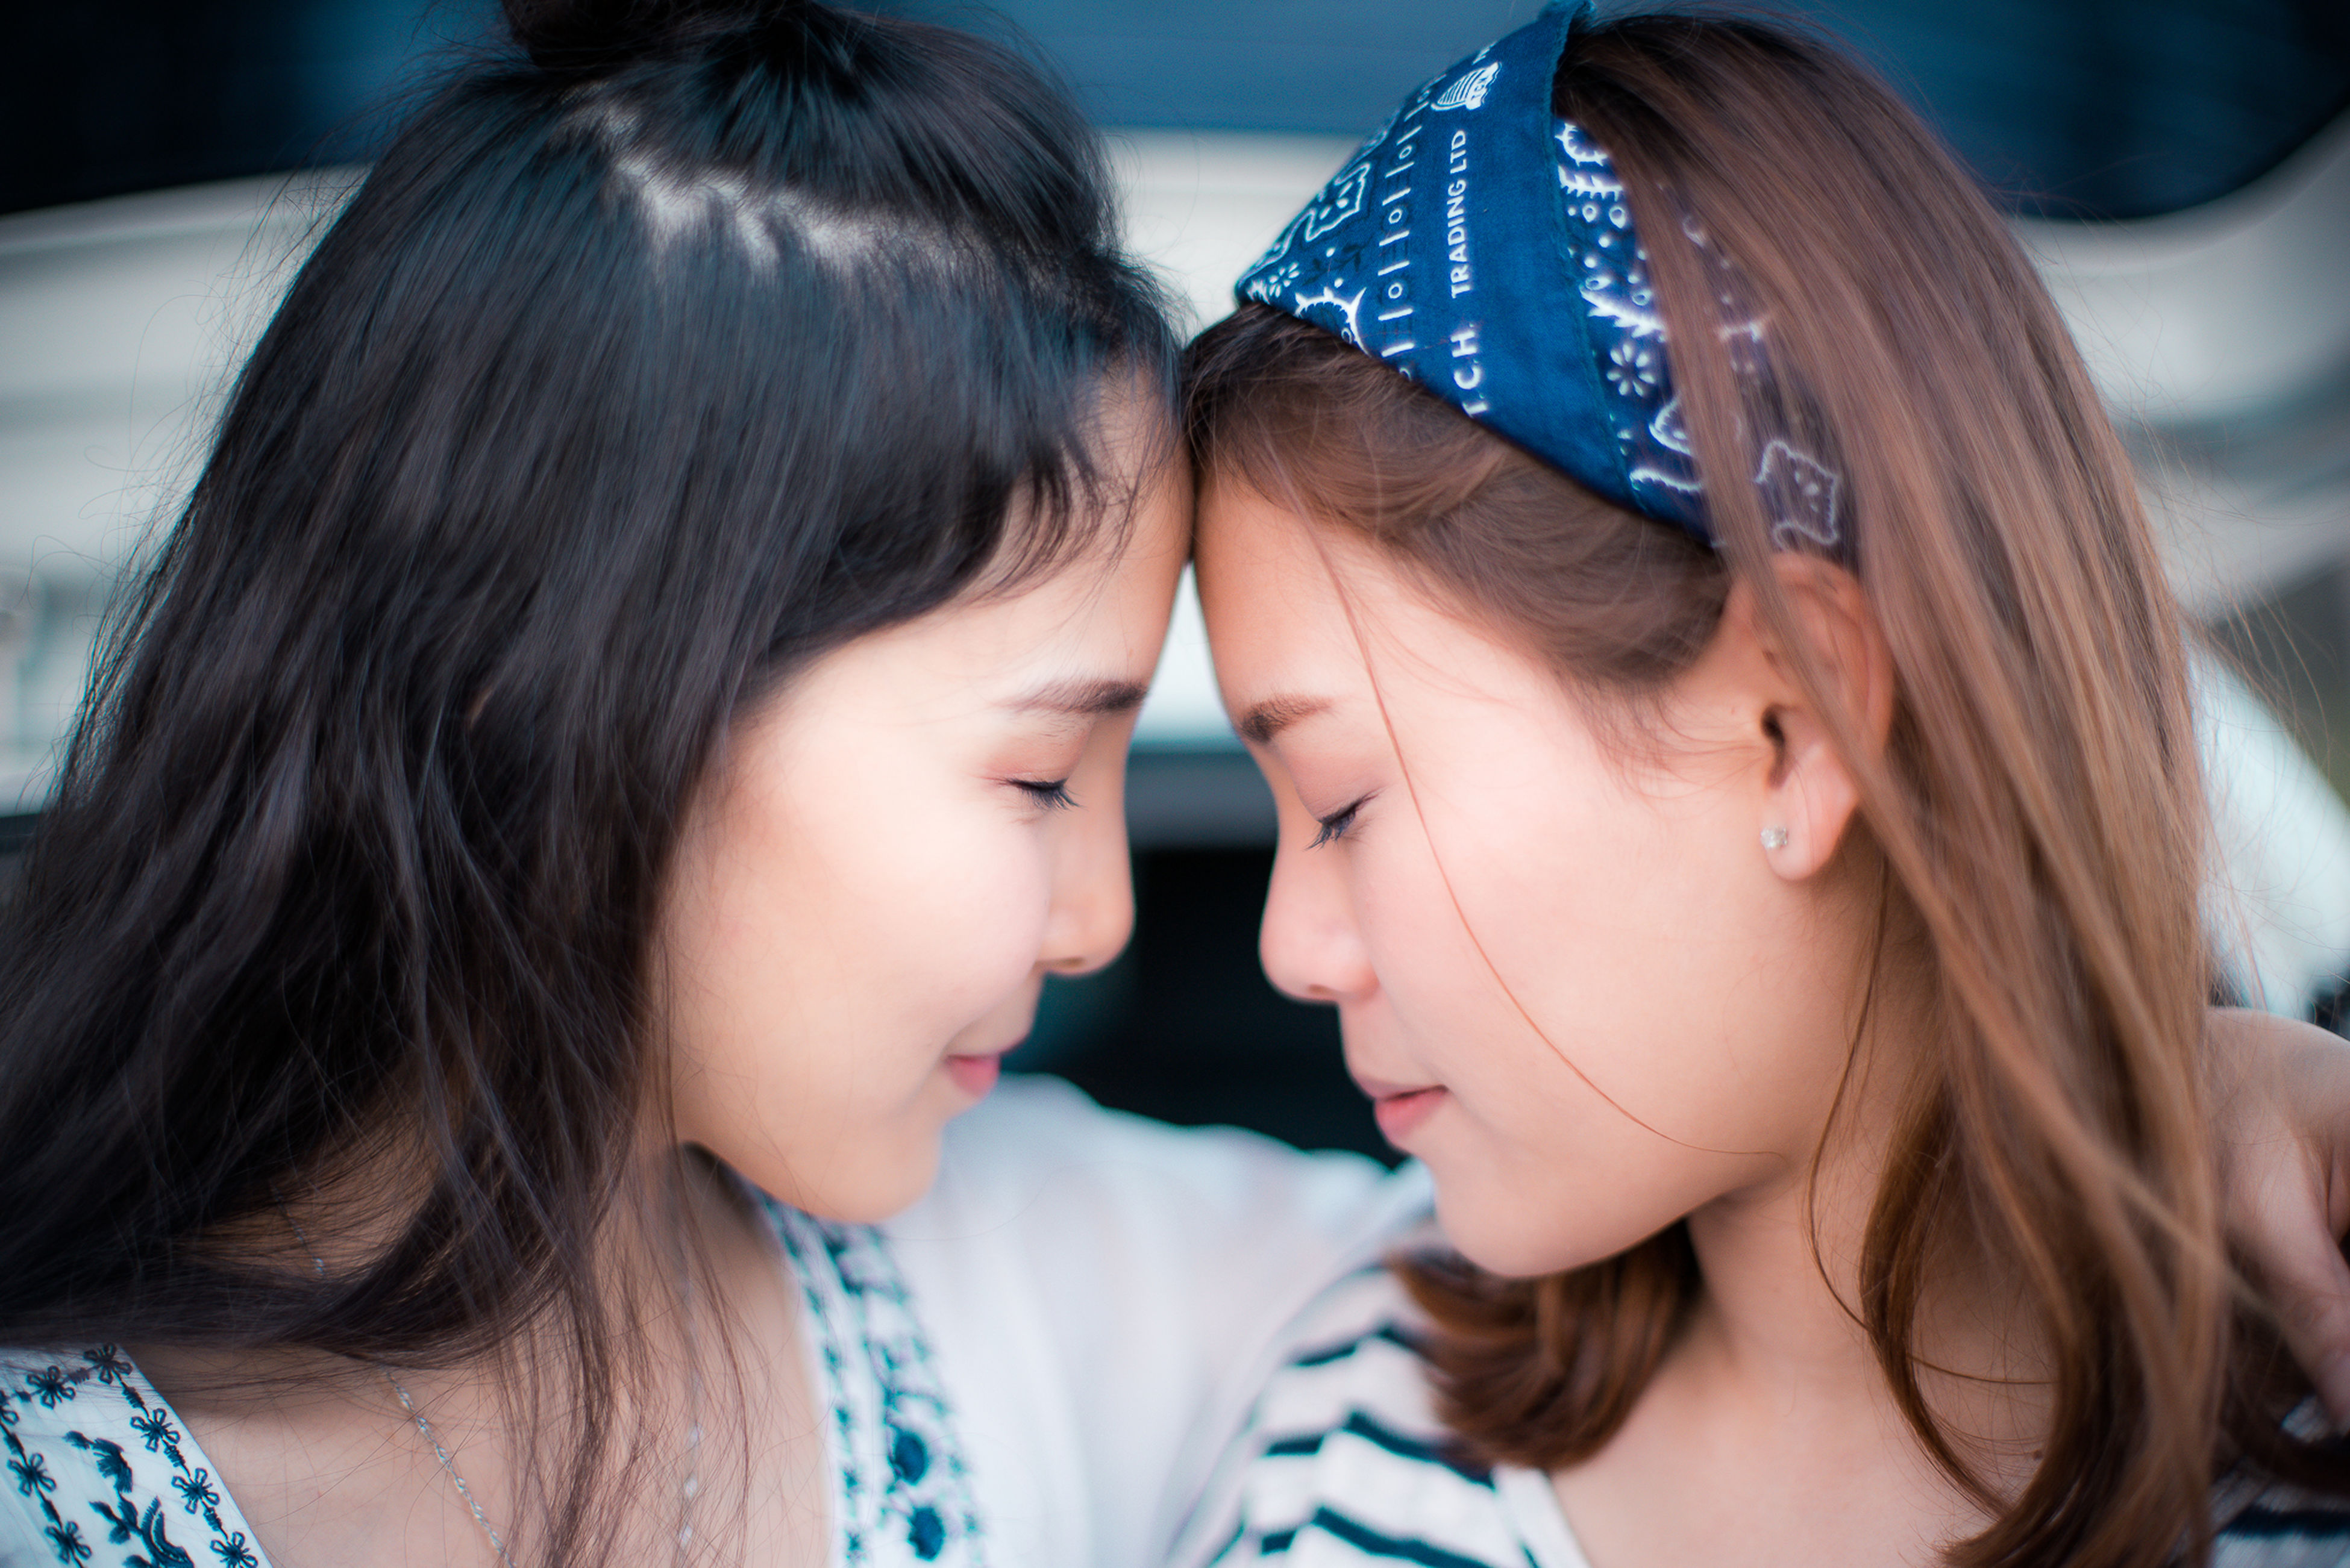 two people, togetherness, child, teenager, girls, females, family, people, friendship, childhood, adult, real people, young women, young adult, indoors, close-up, day